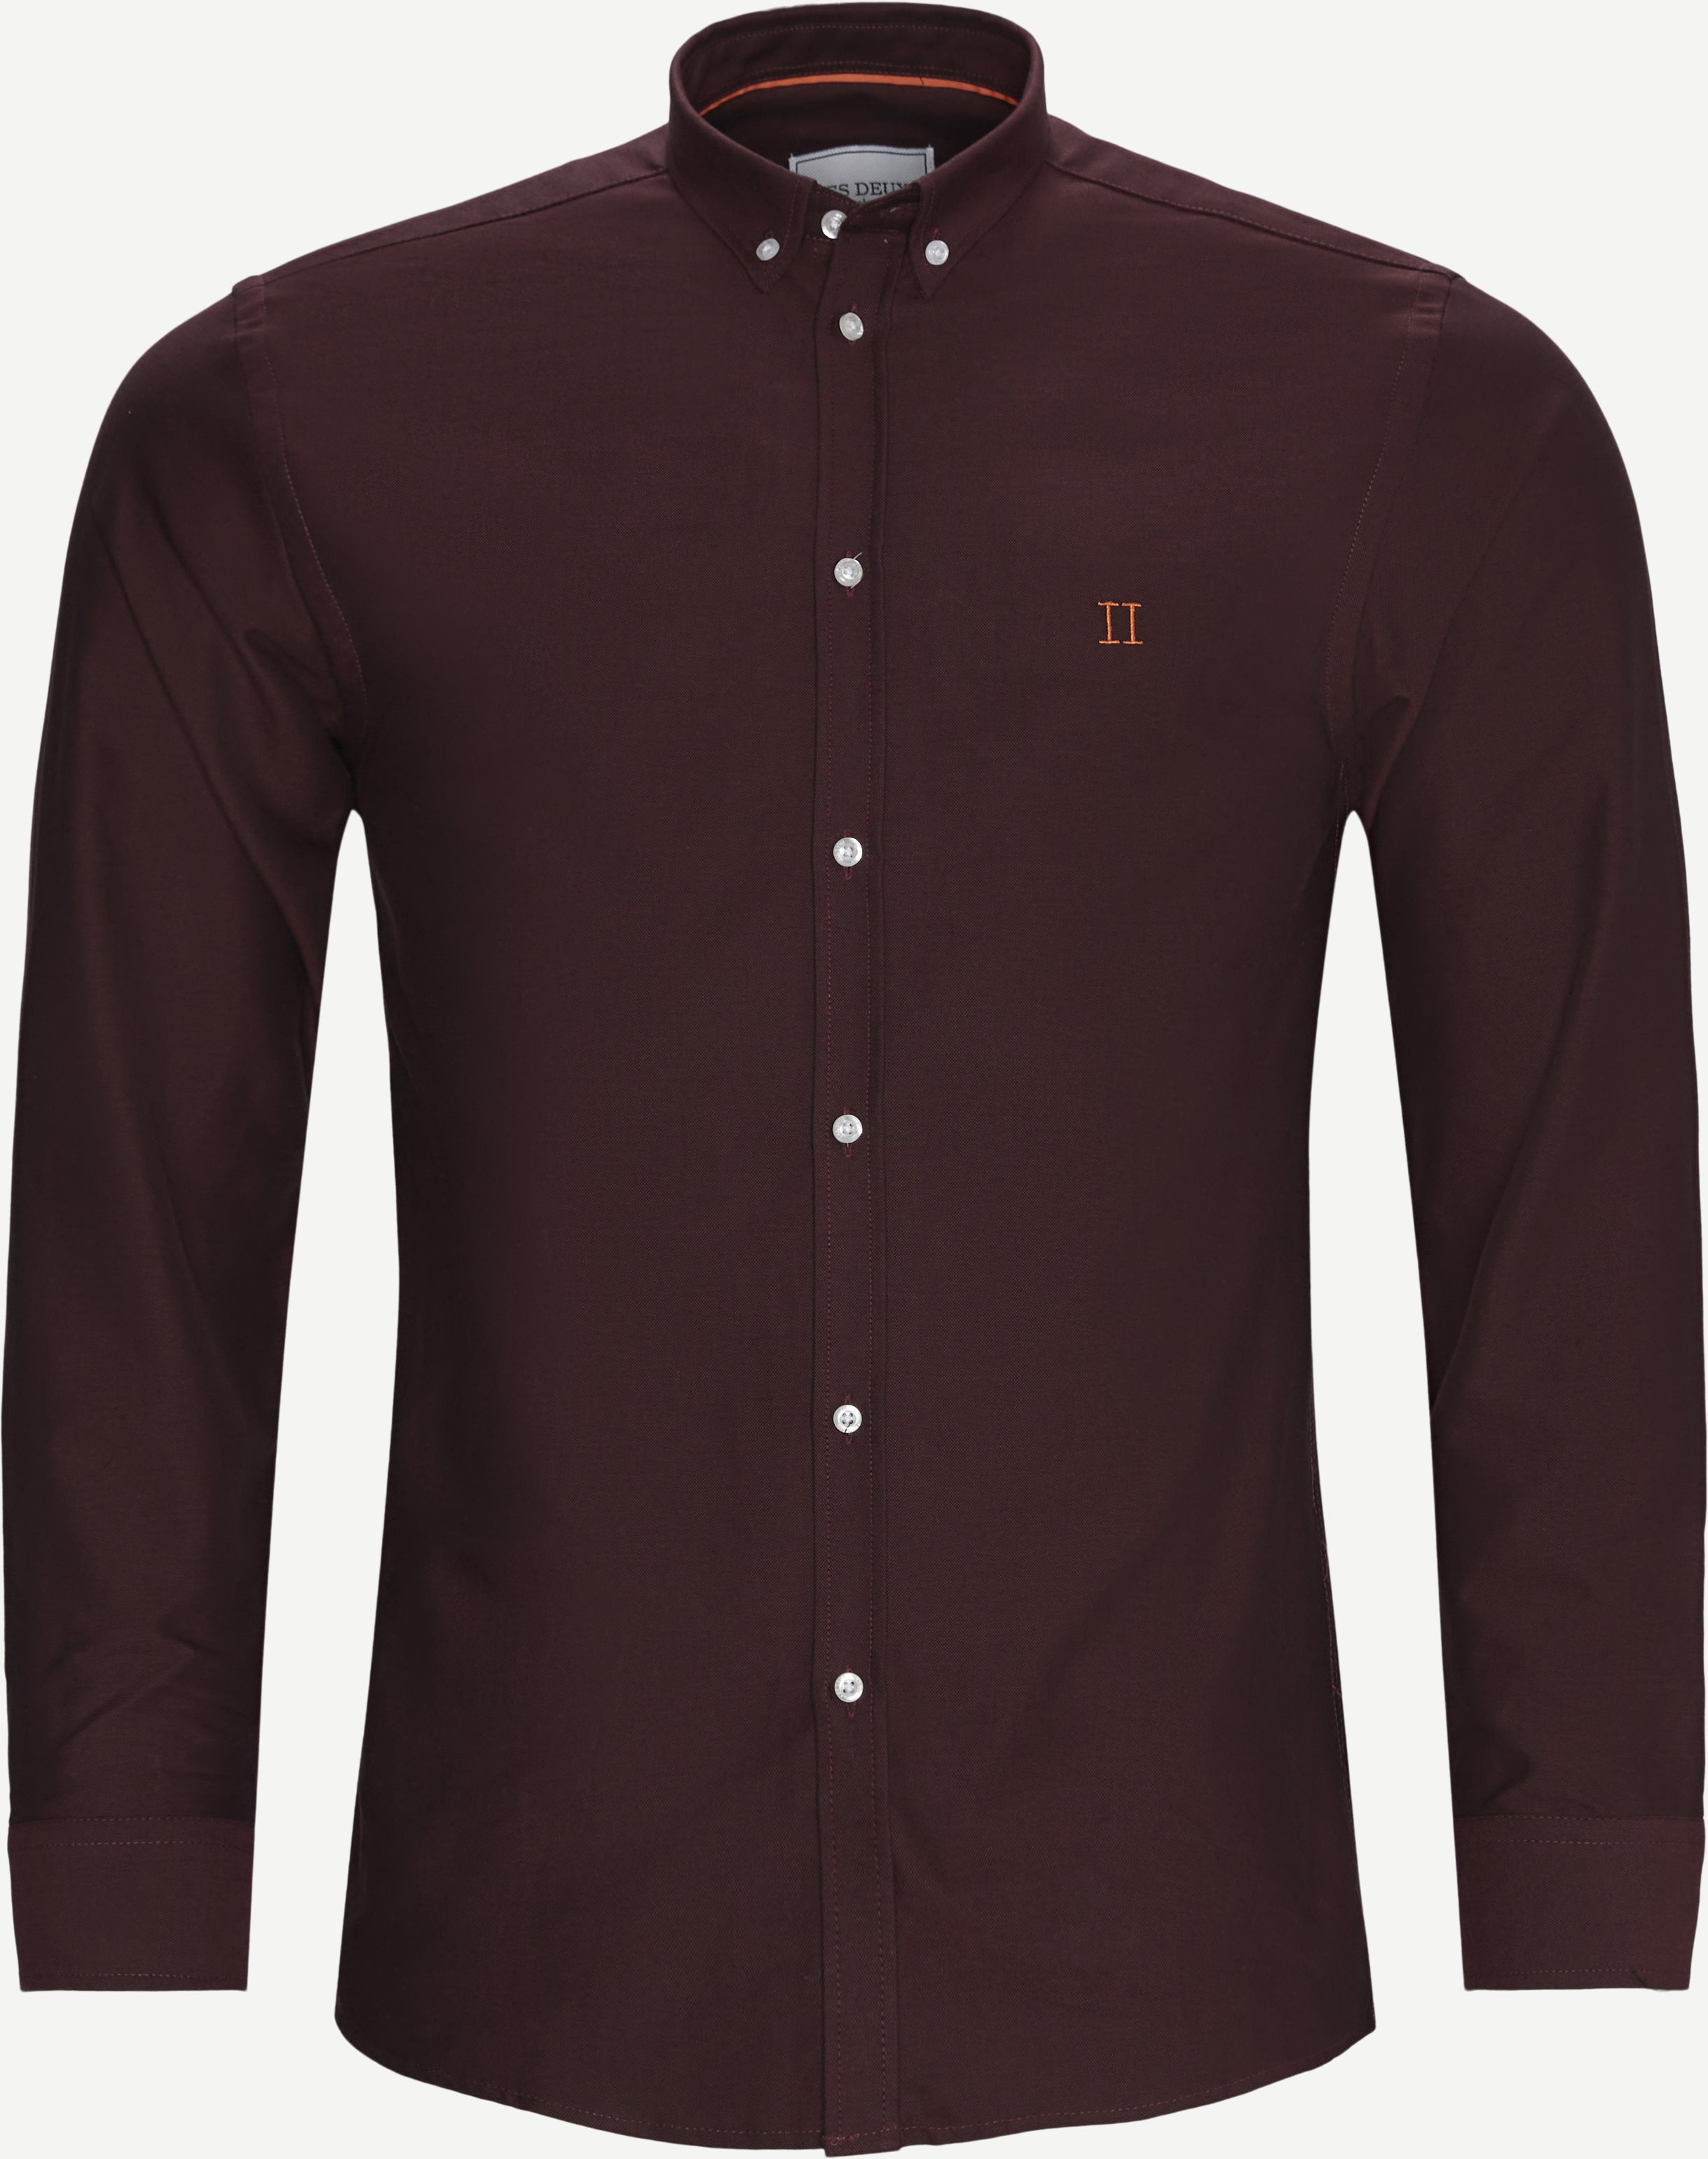 Oliver Oxford Shirt - Shirts - Slim fit - Bordeaux